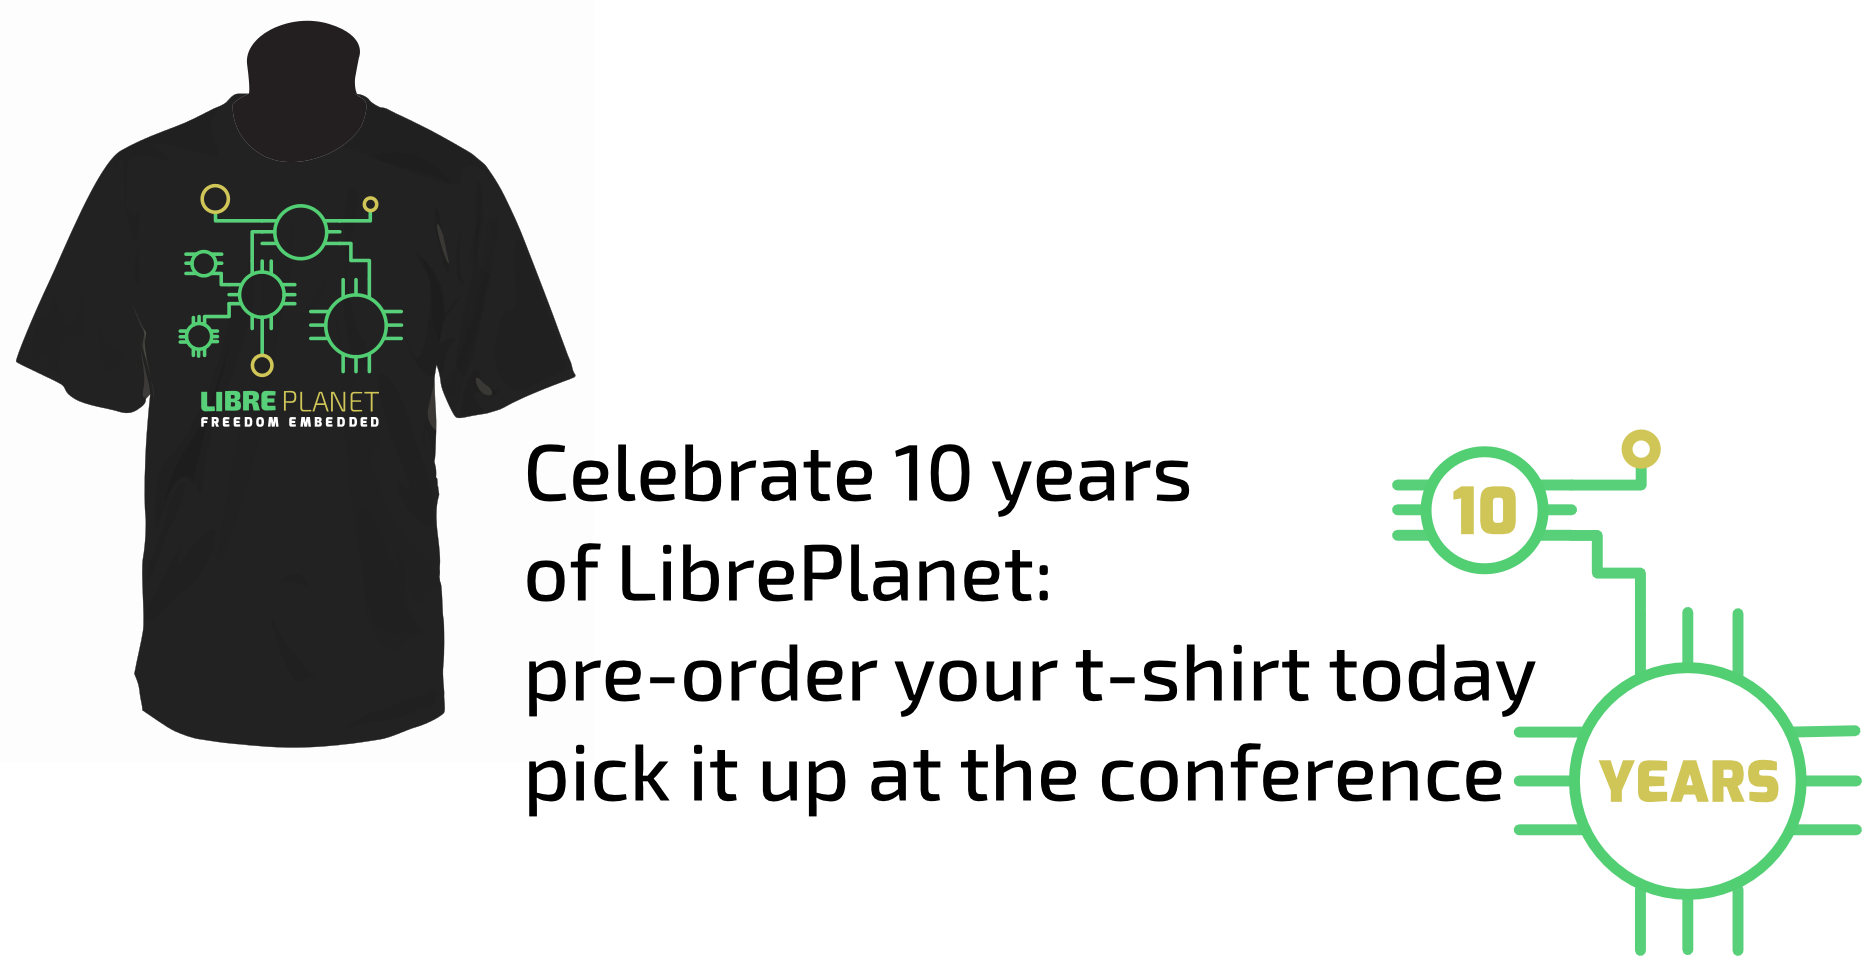 The LibrePlanet shirt. The shirt is black, with the libreplanet logo done to look like a circuit and the text 'Freedom Embedded' on the front, with '10 years' on the back.